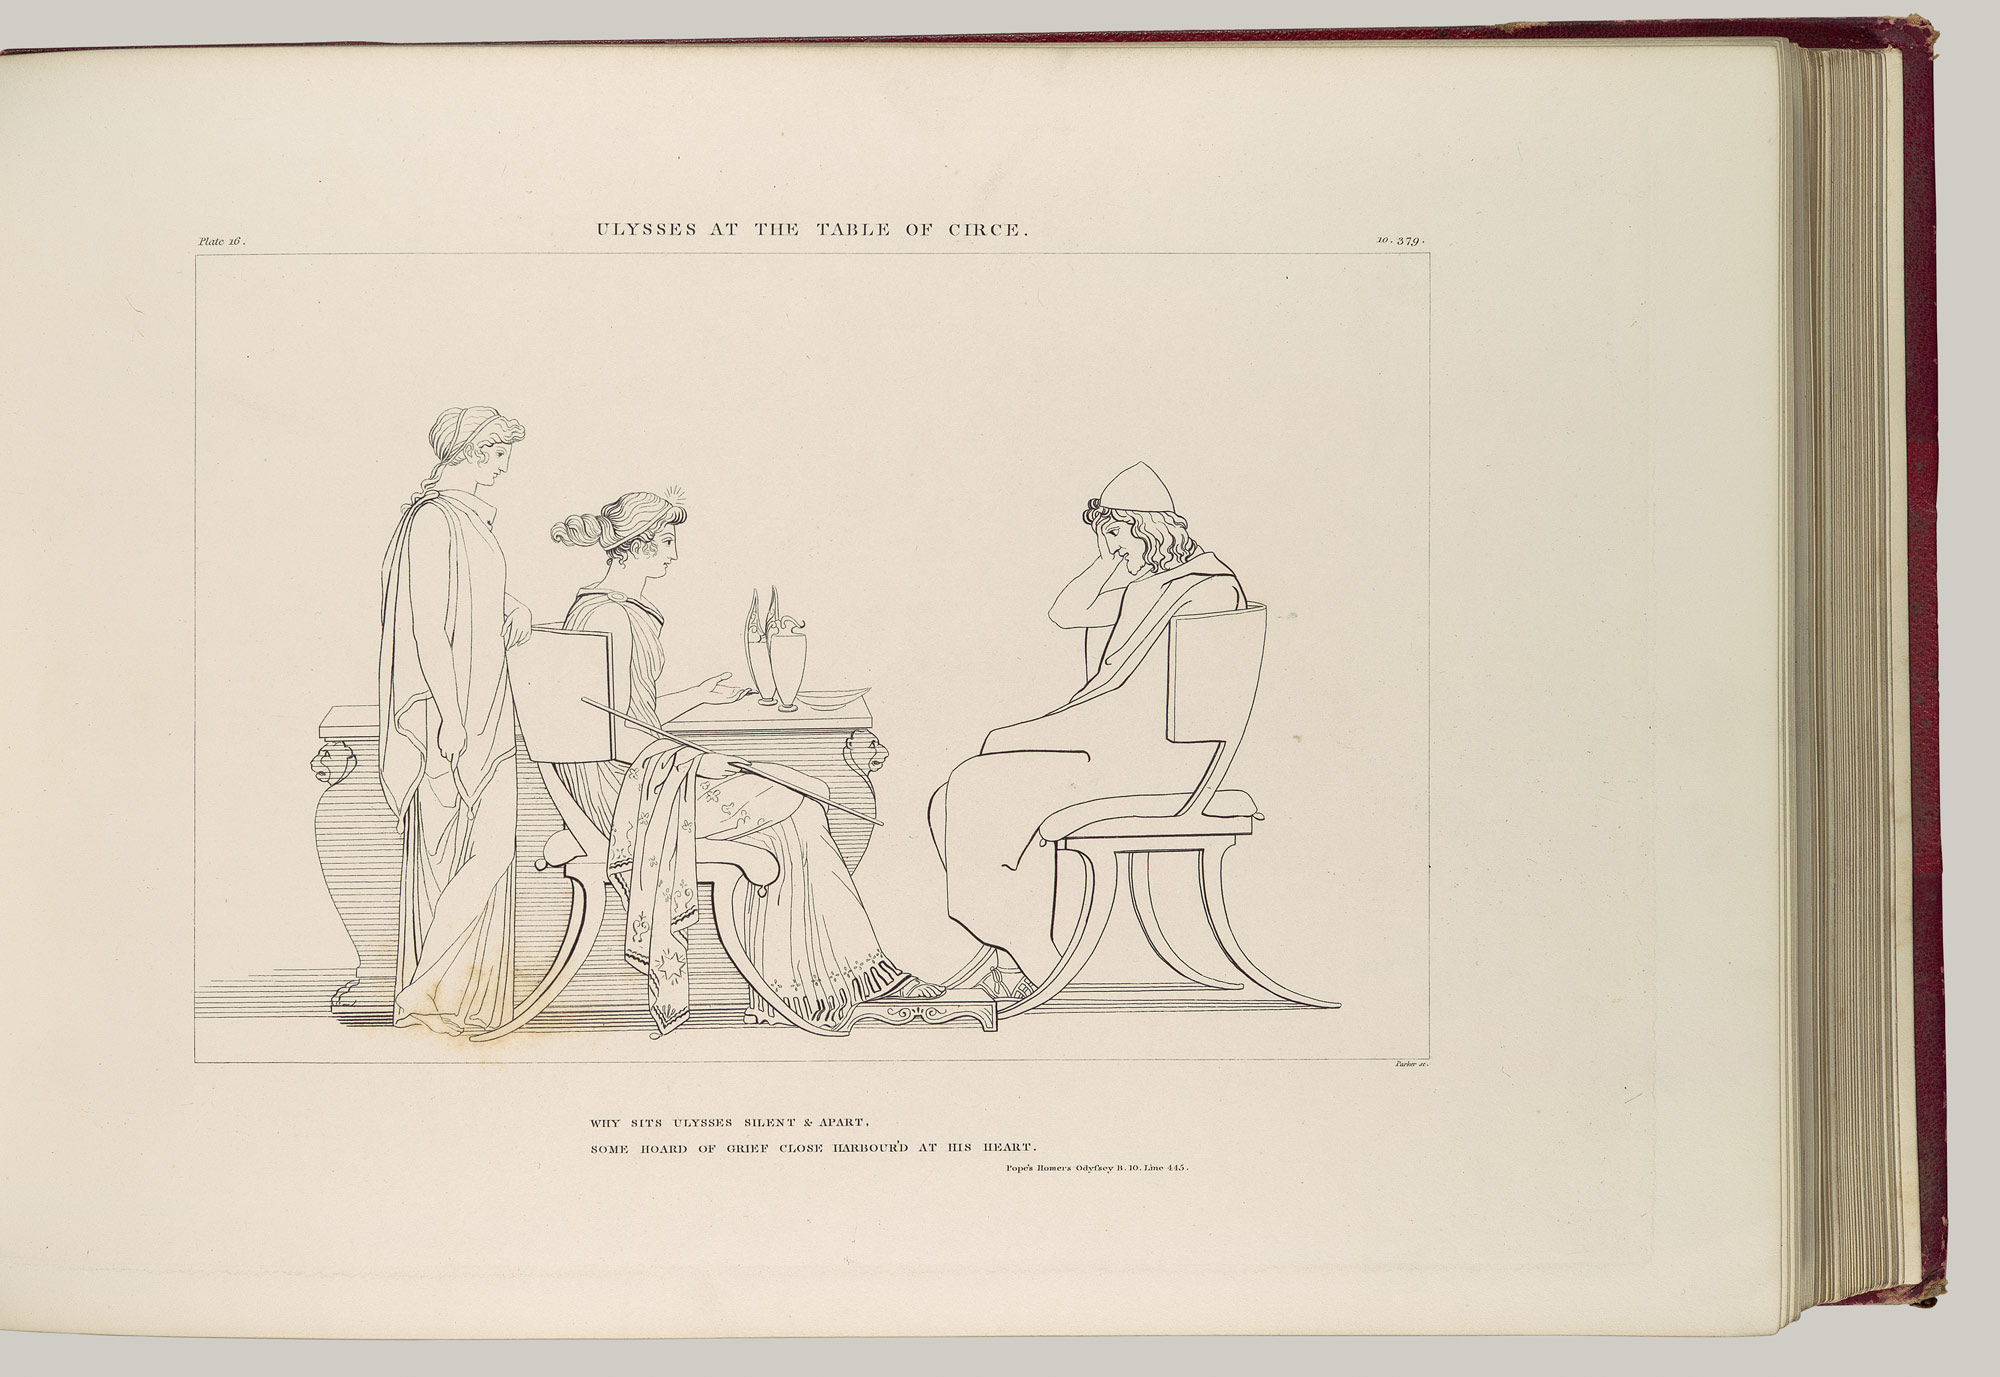 Ulysses at the Table of Circe (The Odyssey of Homer)